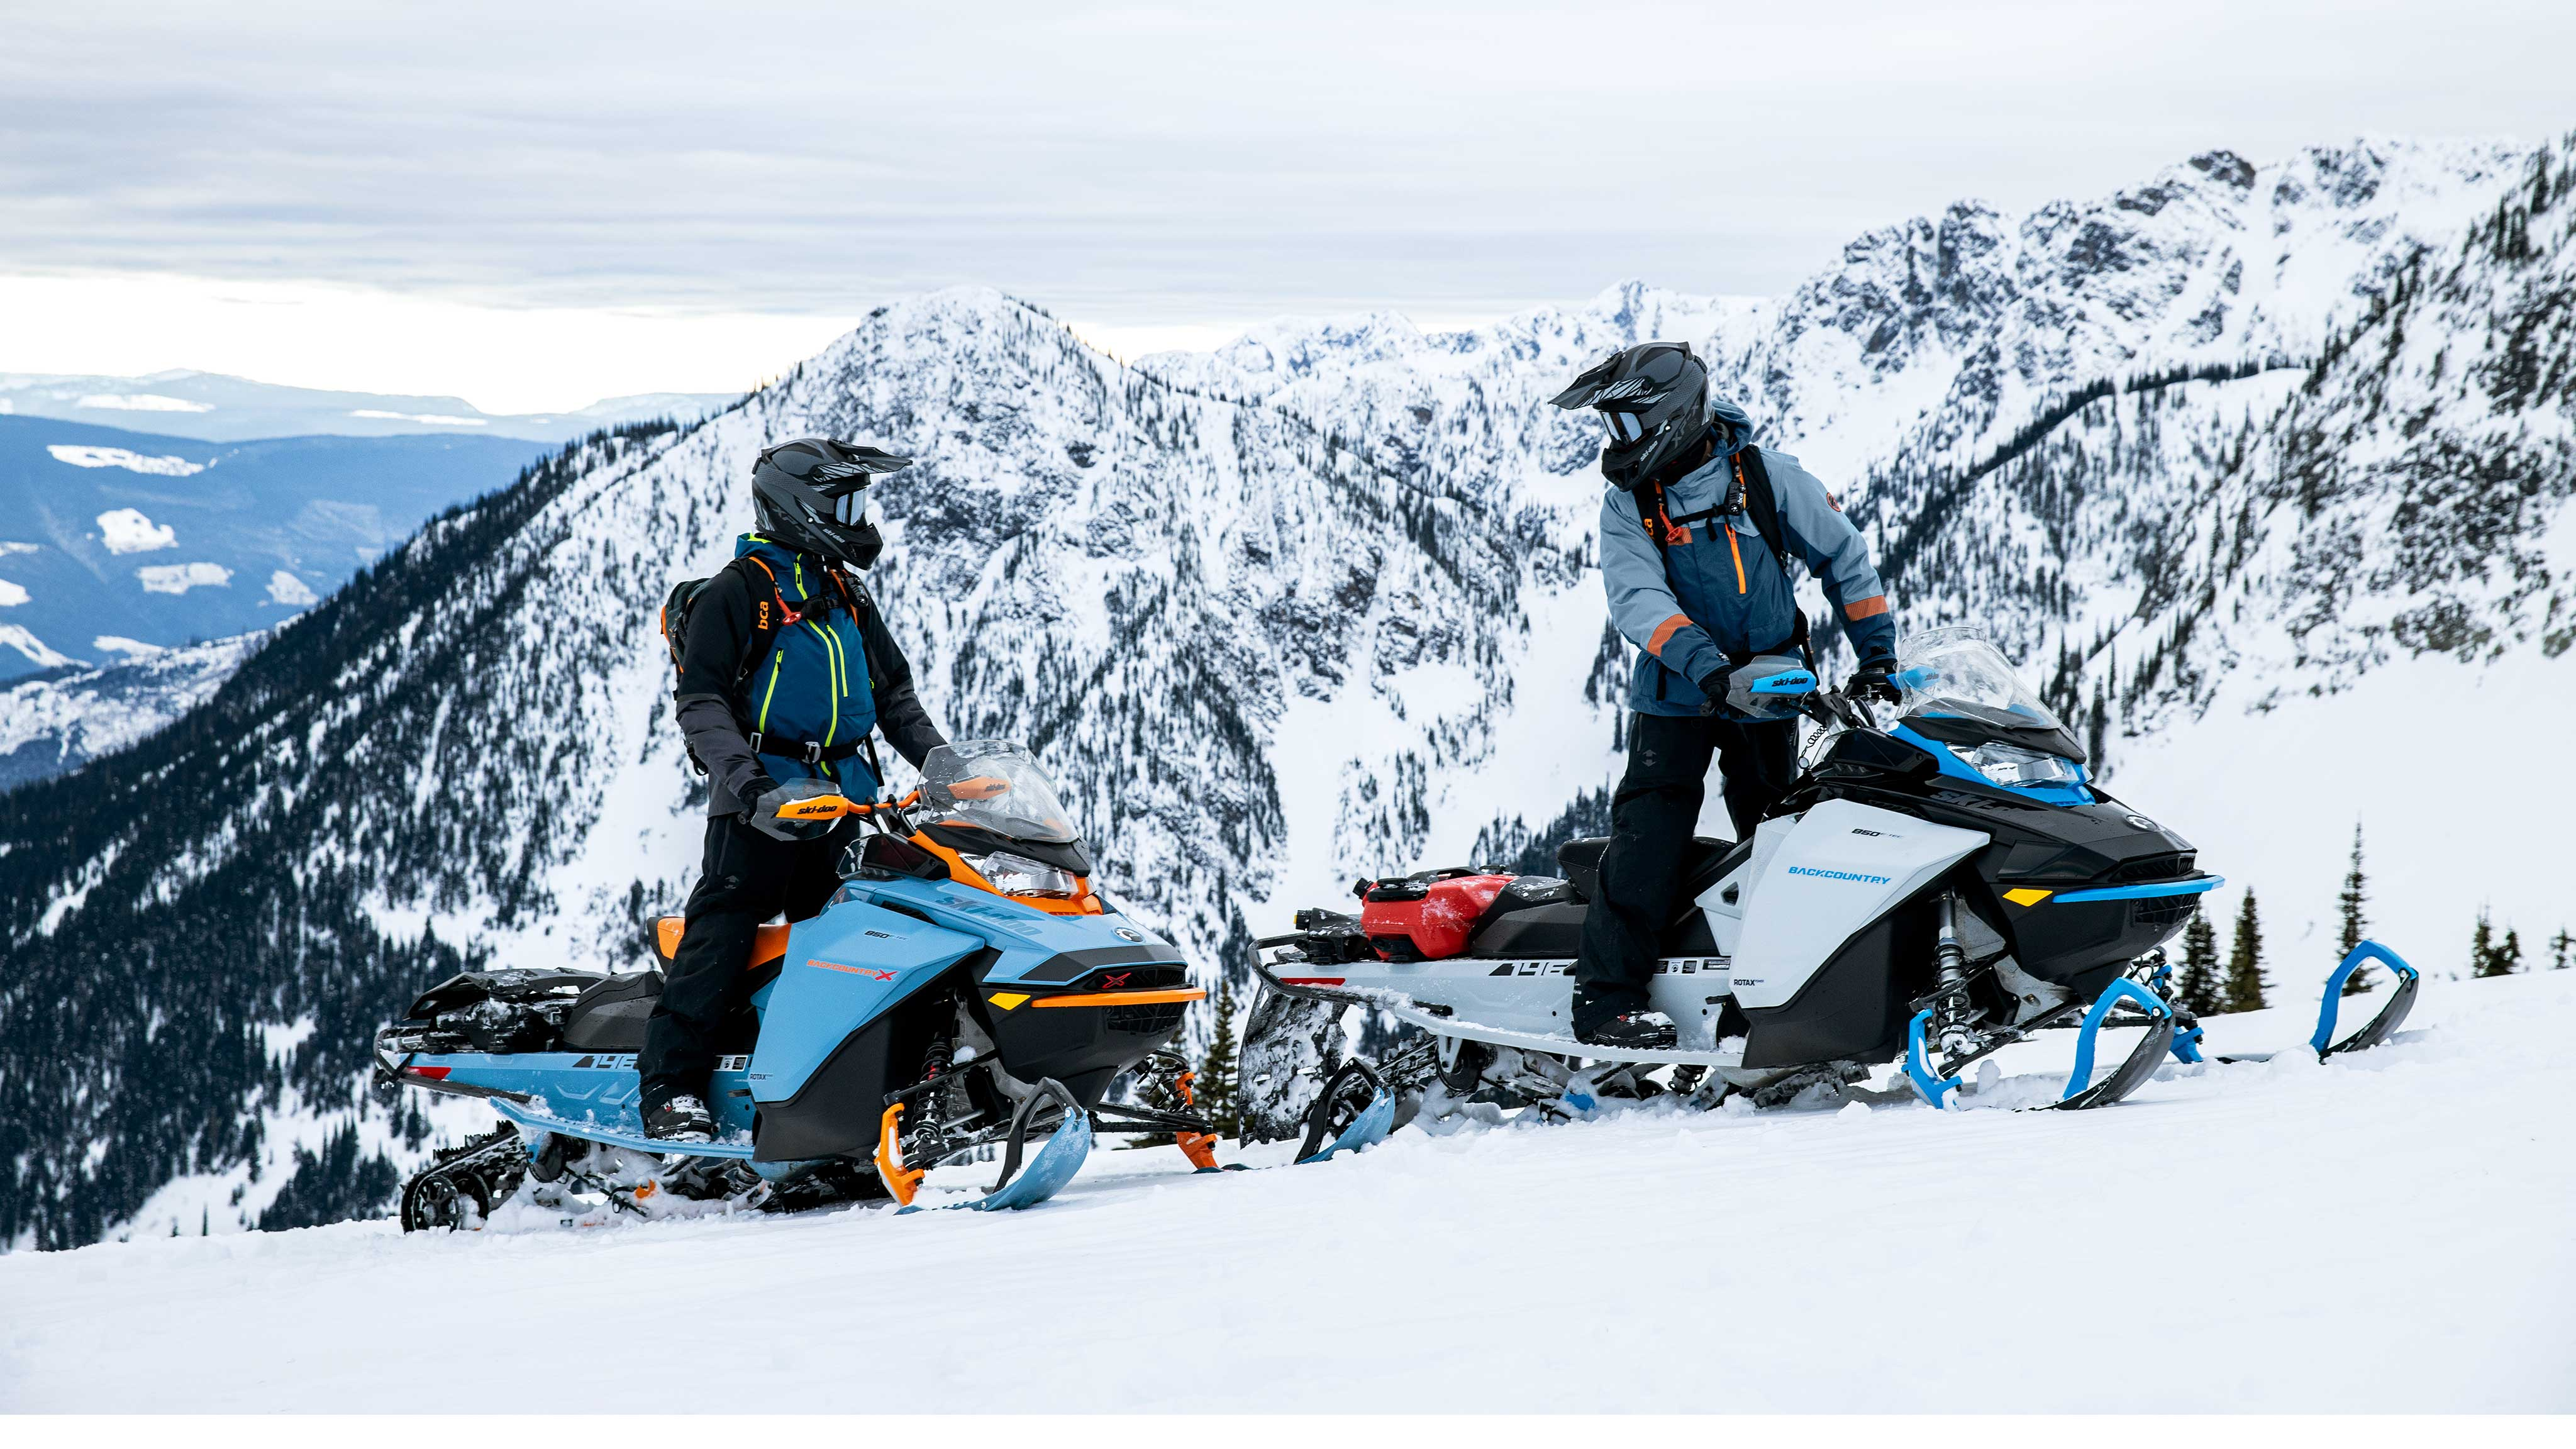 2 riders talking during a snowmobile backcountry ride